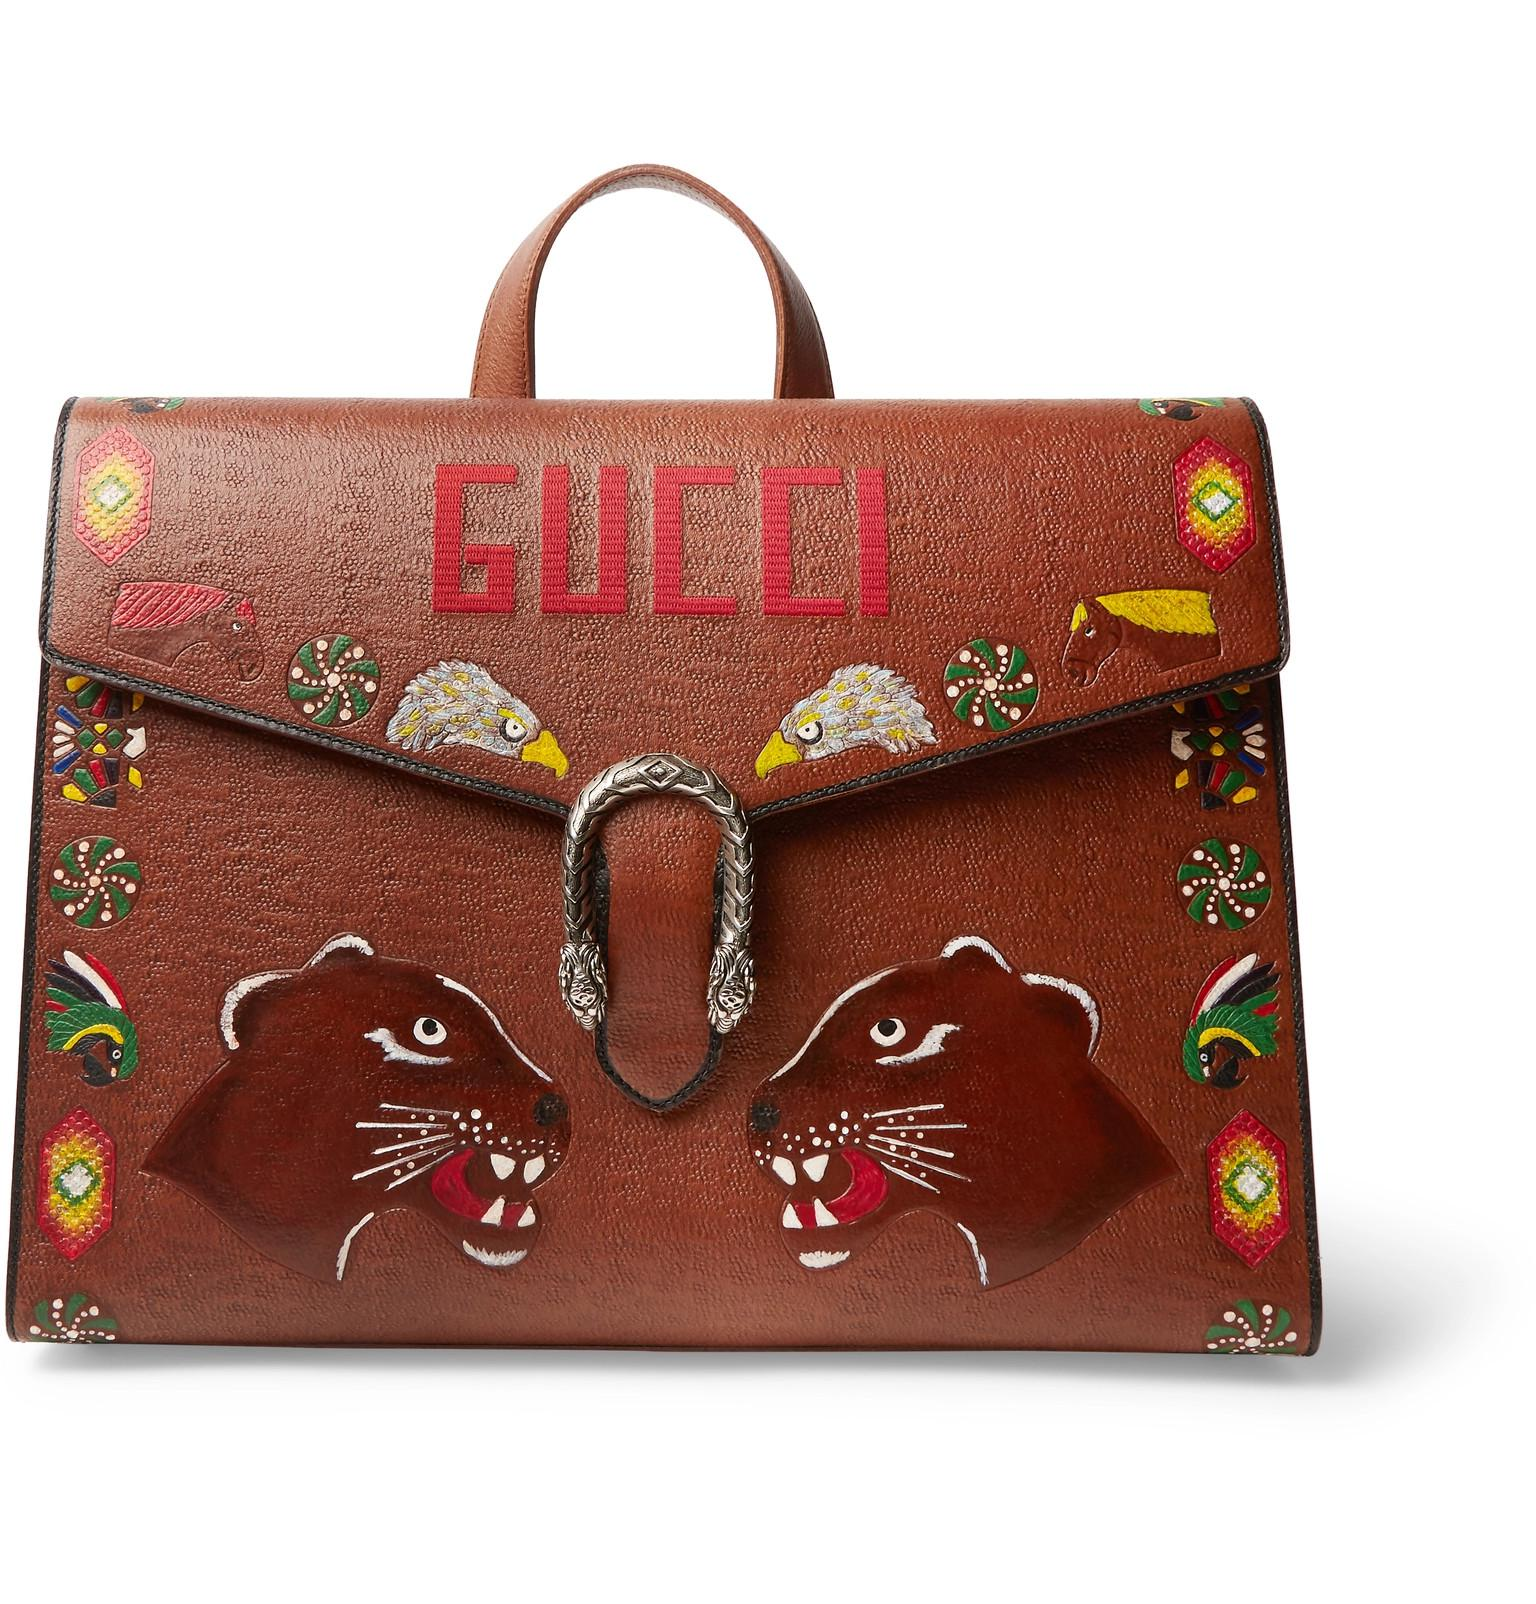 09fda9c2228 Gucci Dionysus Hand-painted Textured-leather Briefcase in Brown for ...